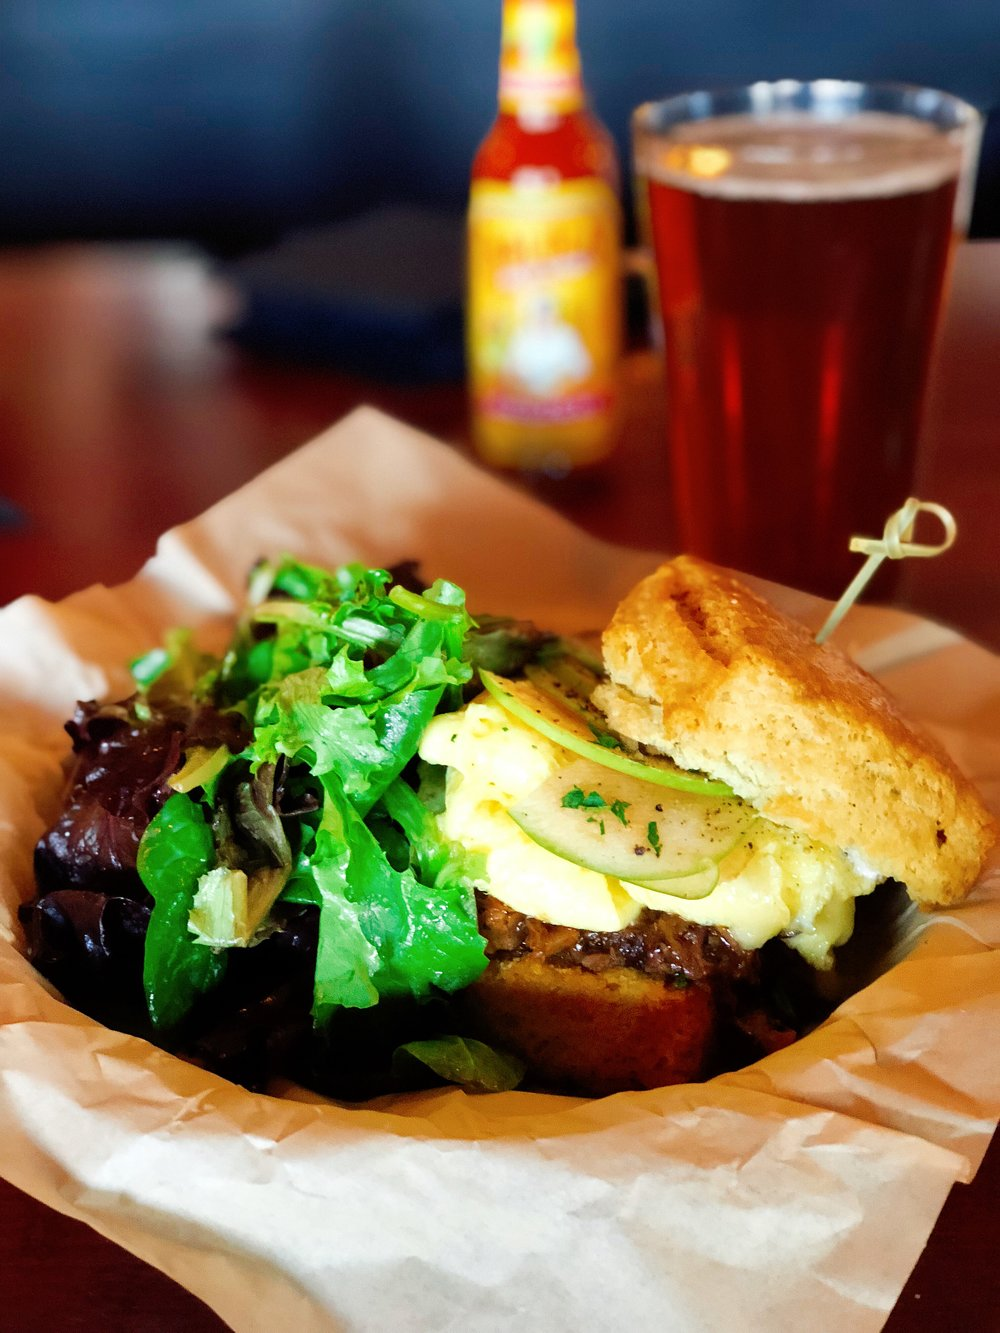 The Local | Stiles Switch Brisket + Warm Biscuit + Soft Scrambled Eggs + BBQ Sauce + Green Apple + Cheddar Cheese